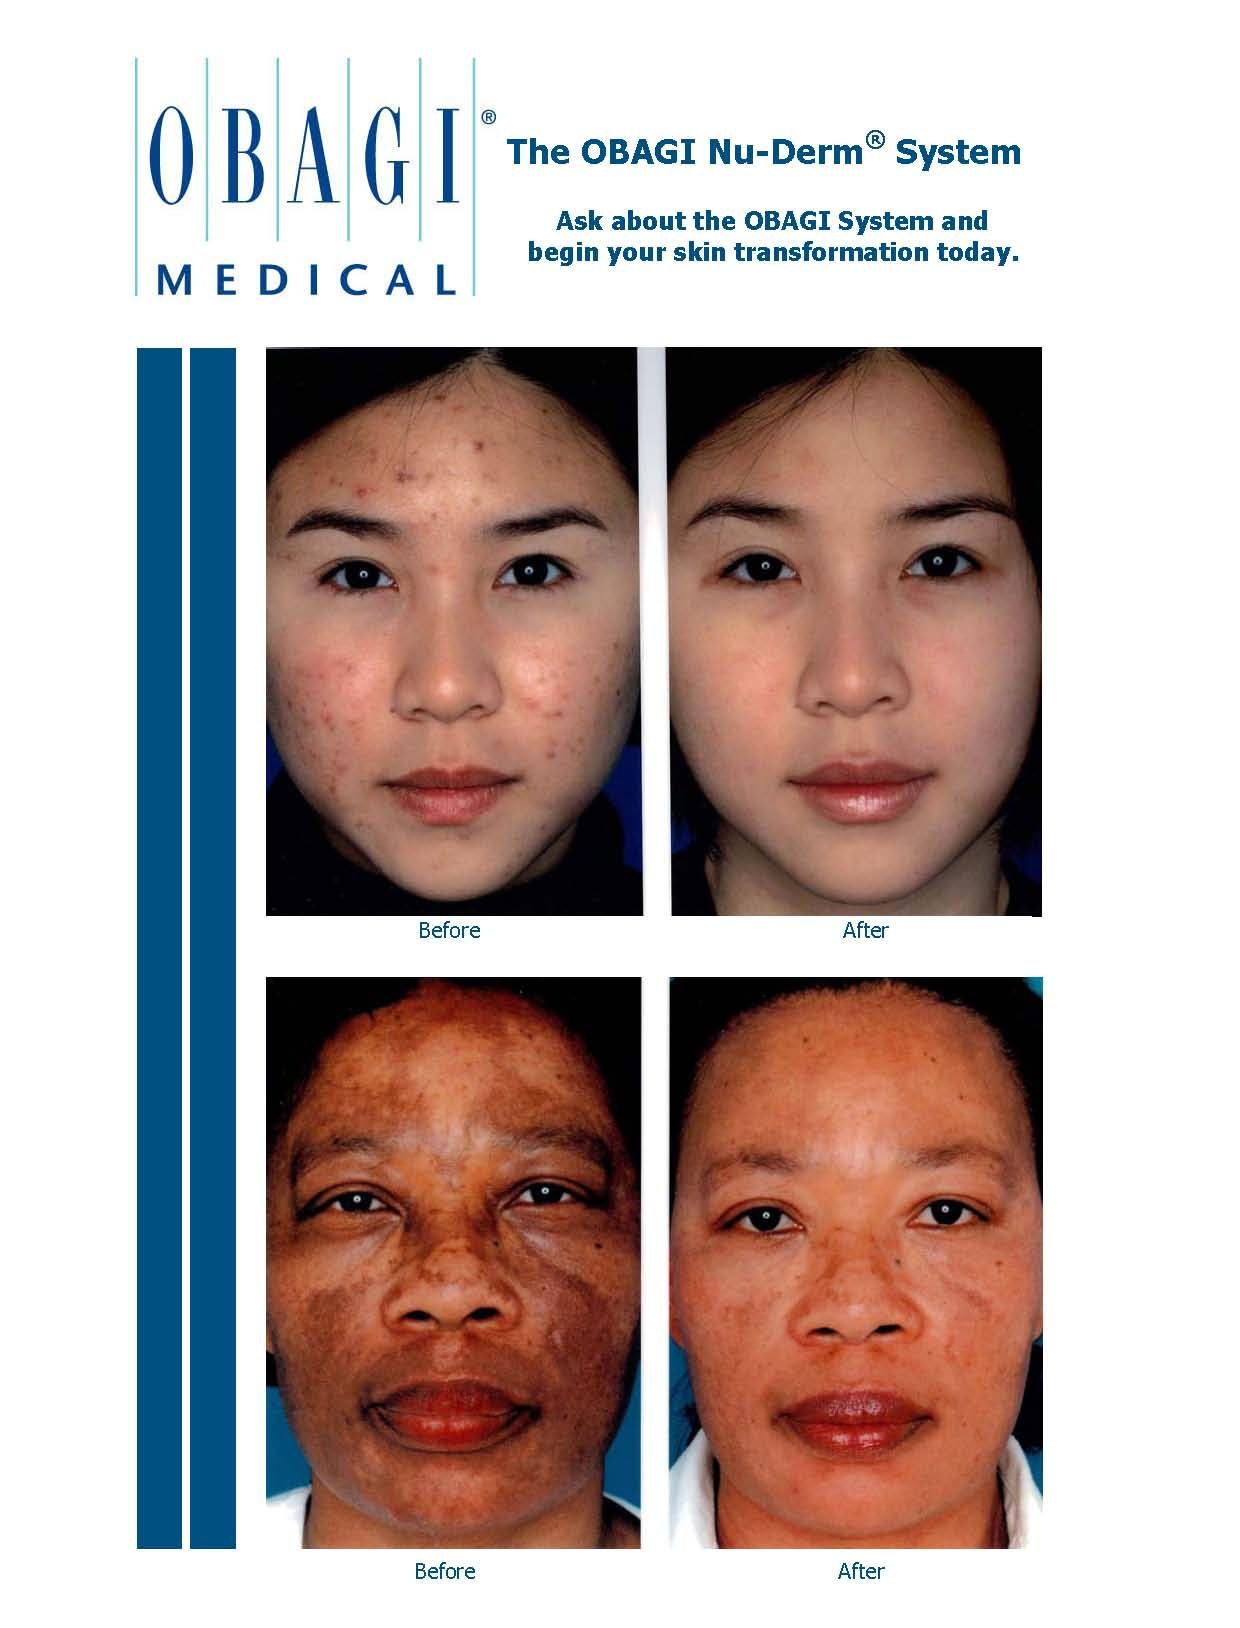 Obagi Nu Derm Shocking Before And After Photos What